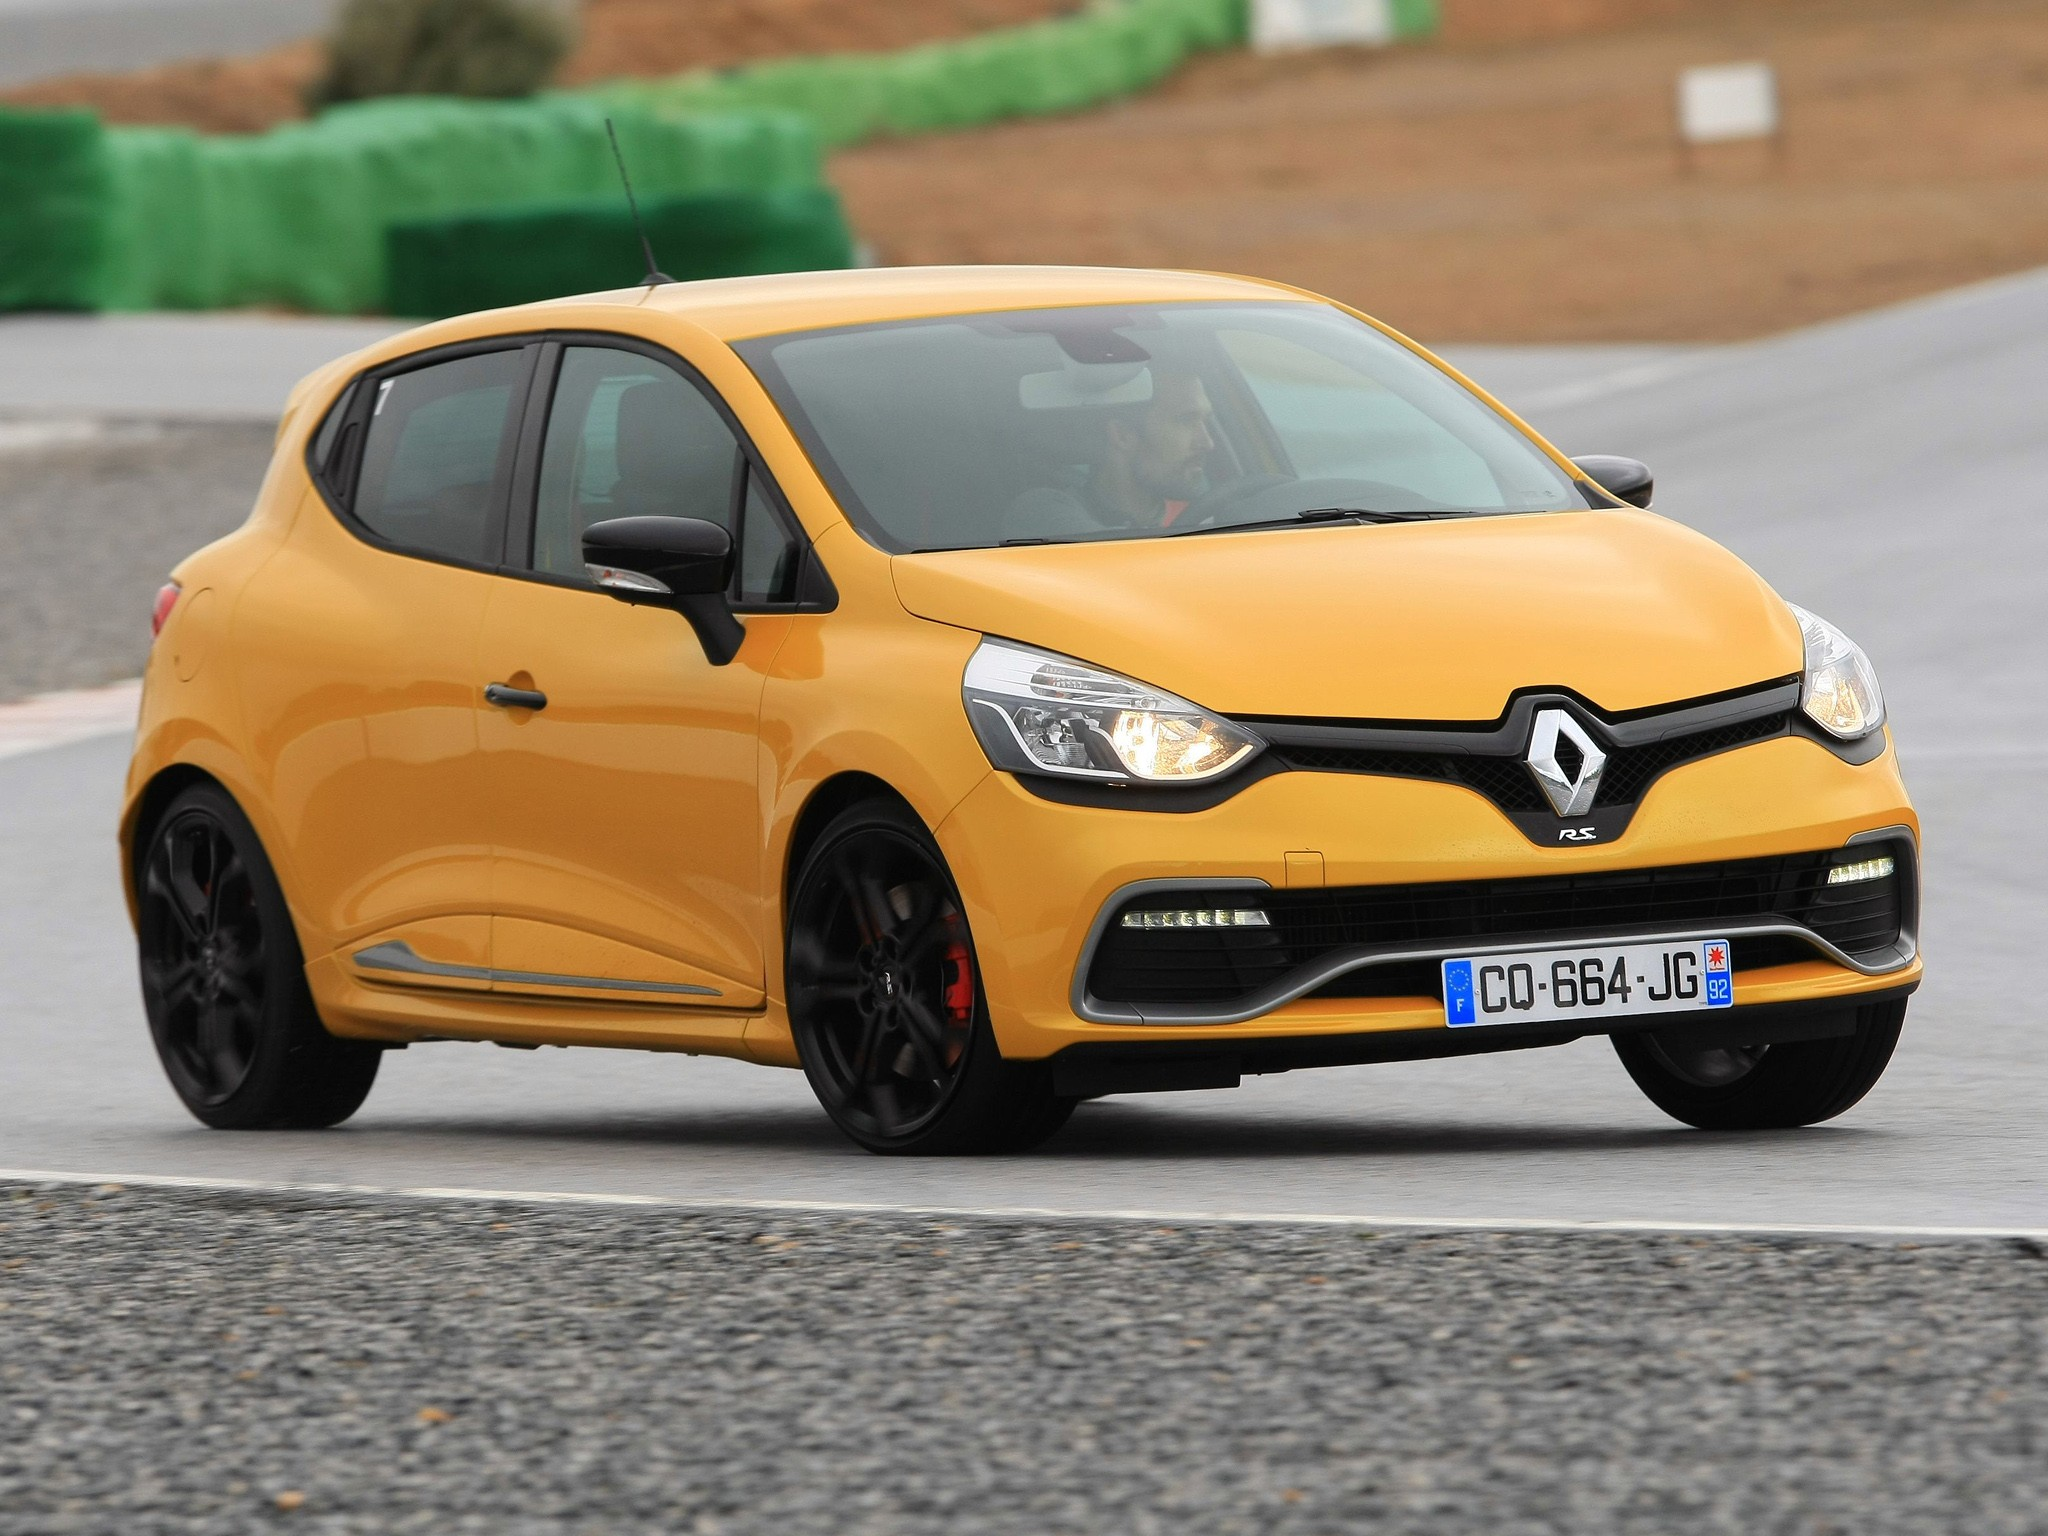 renault clio rs specs photos 2013 2014 2015 2016. Black Bedroom Furniture Sets. Home Design Ideas